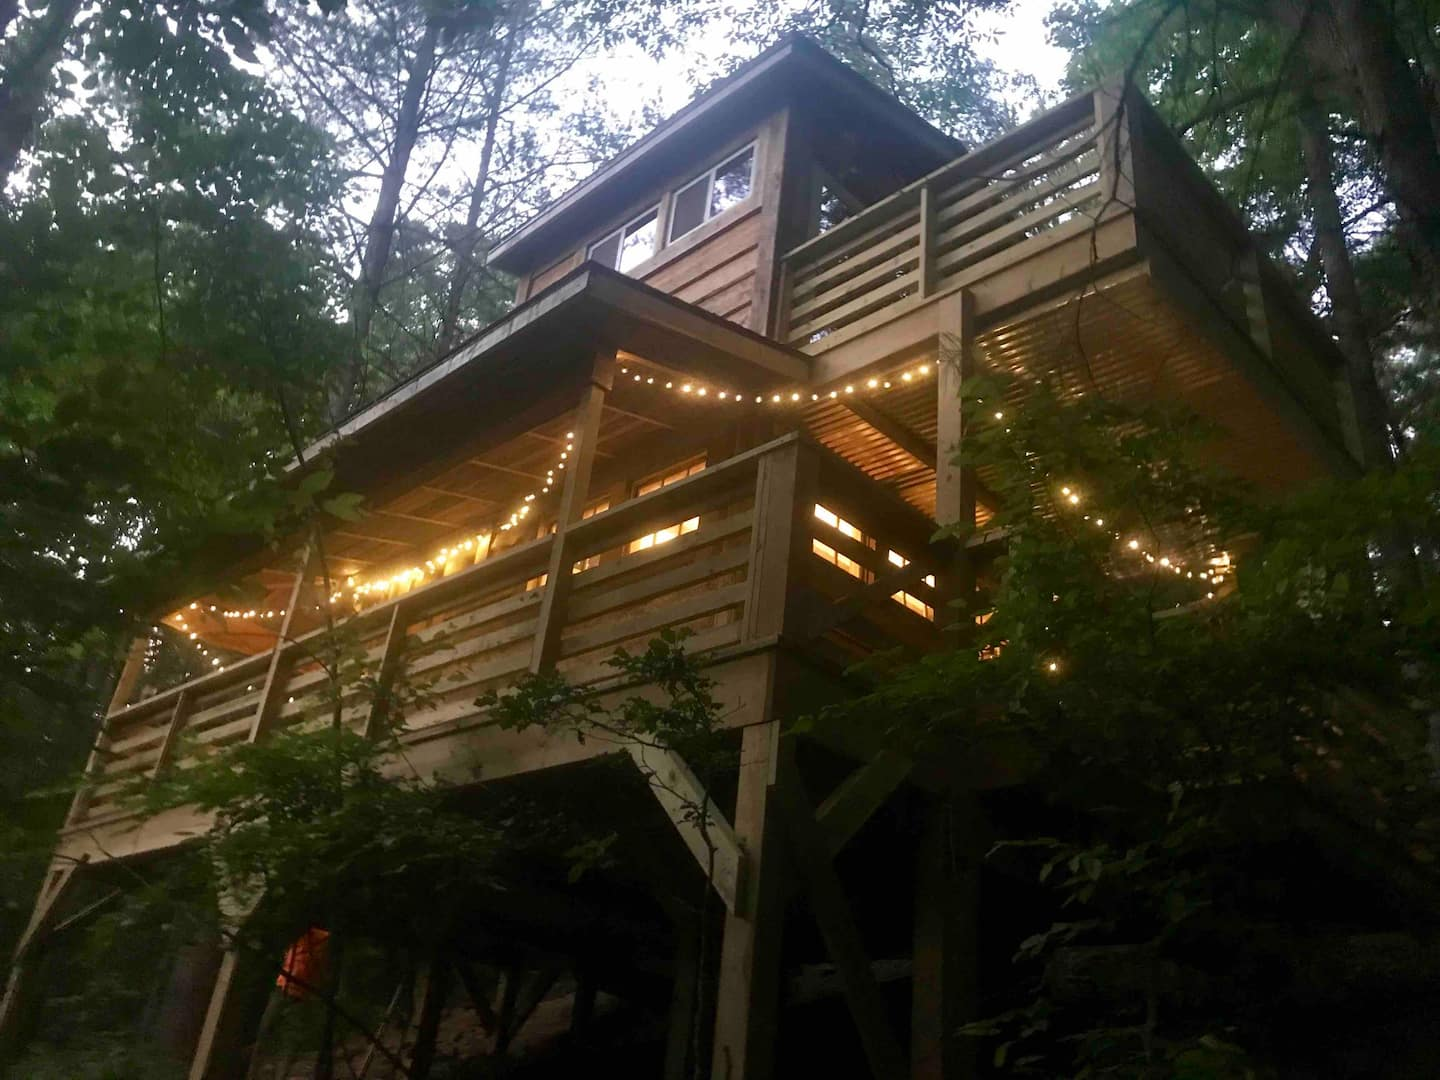 Firefly Bend Treehouse - Glamping, Hot Tub, Hiking